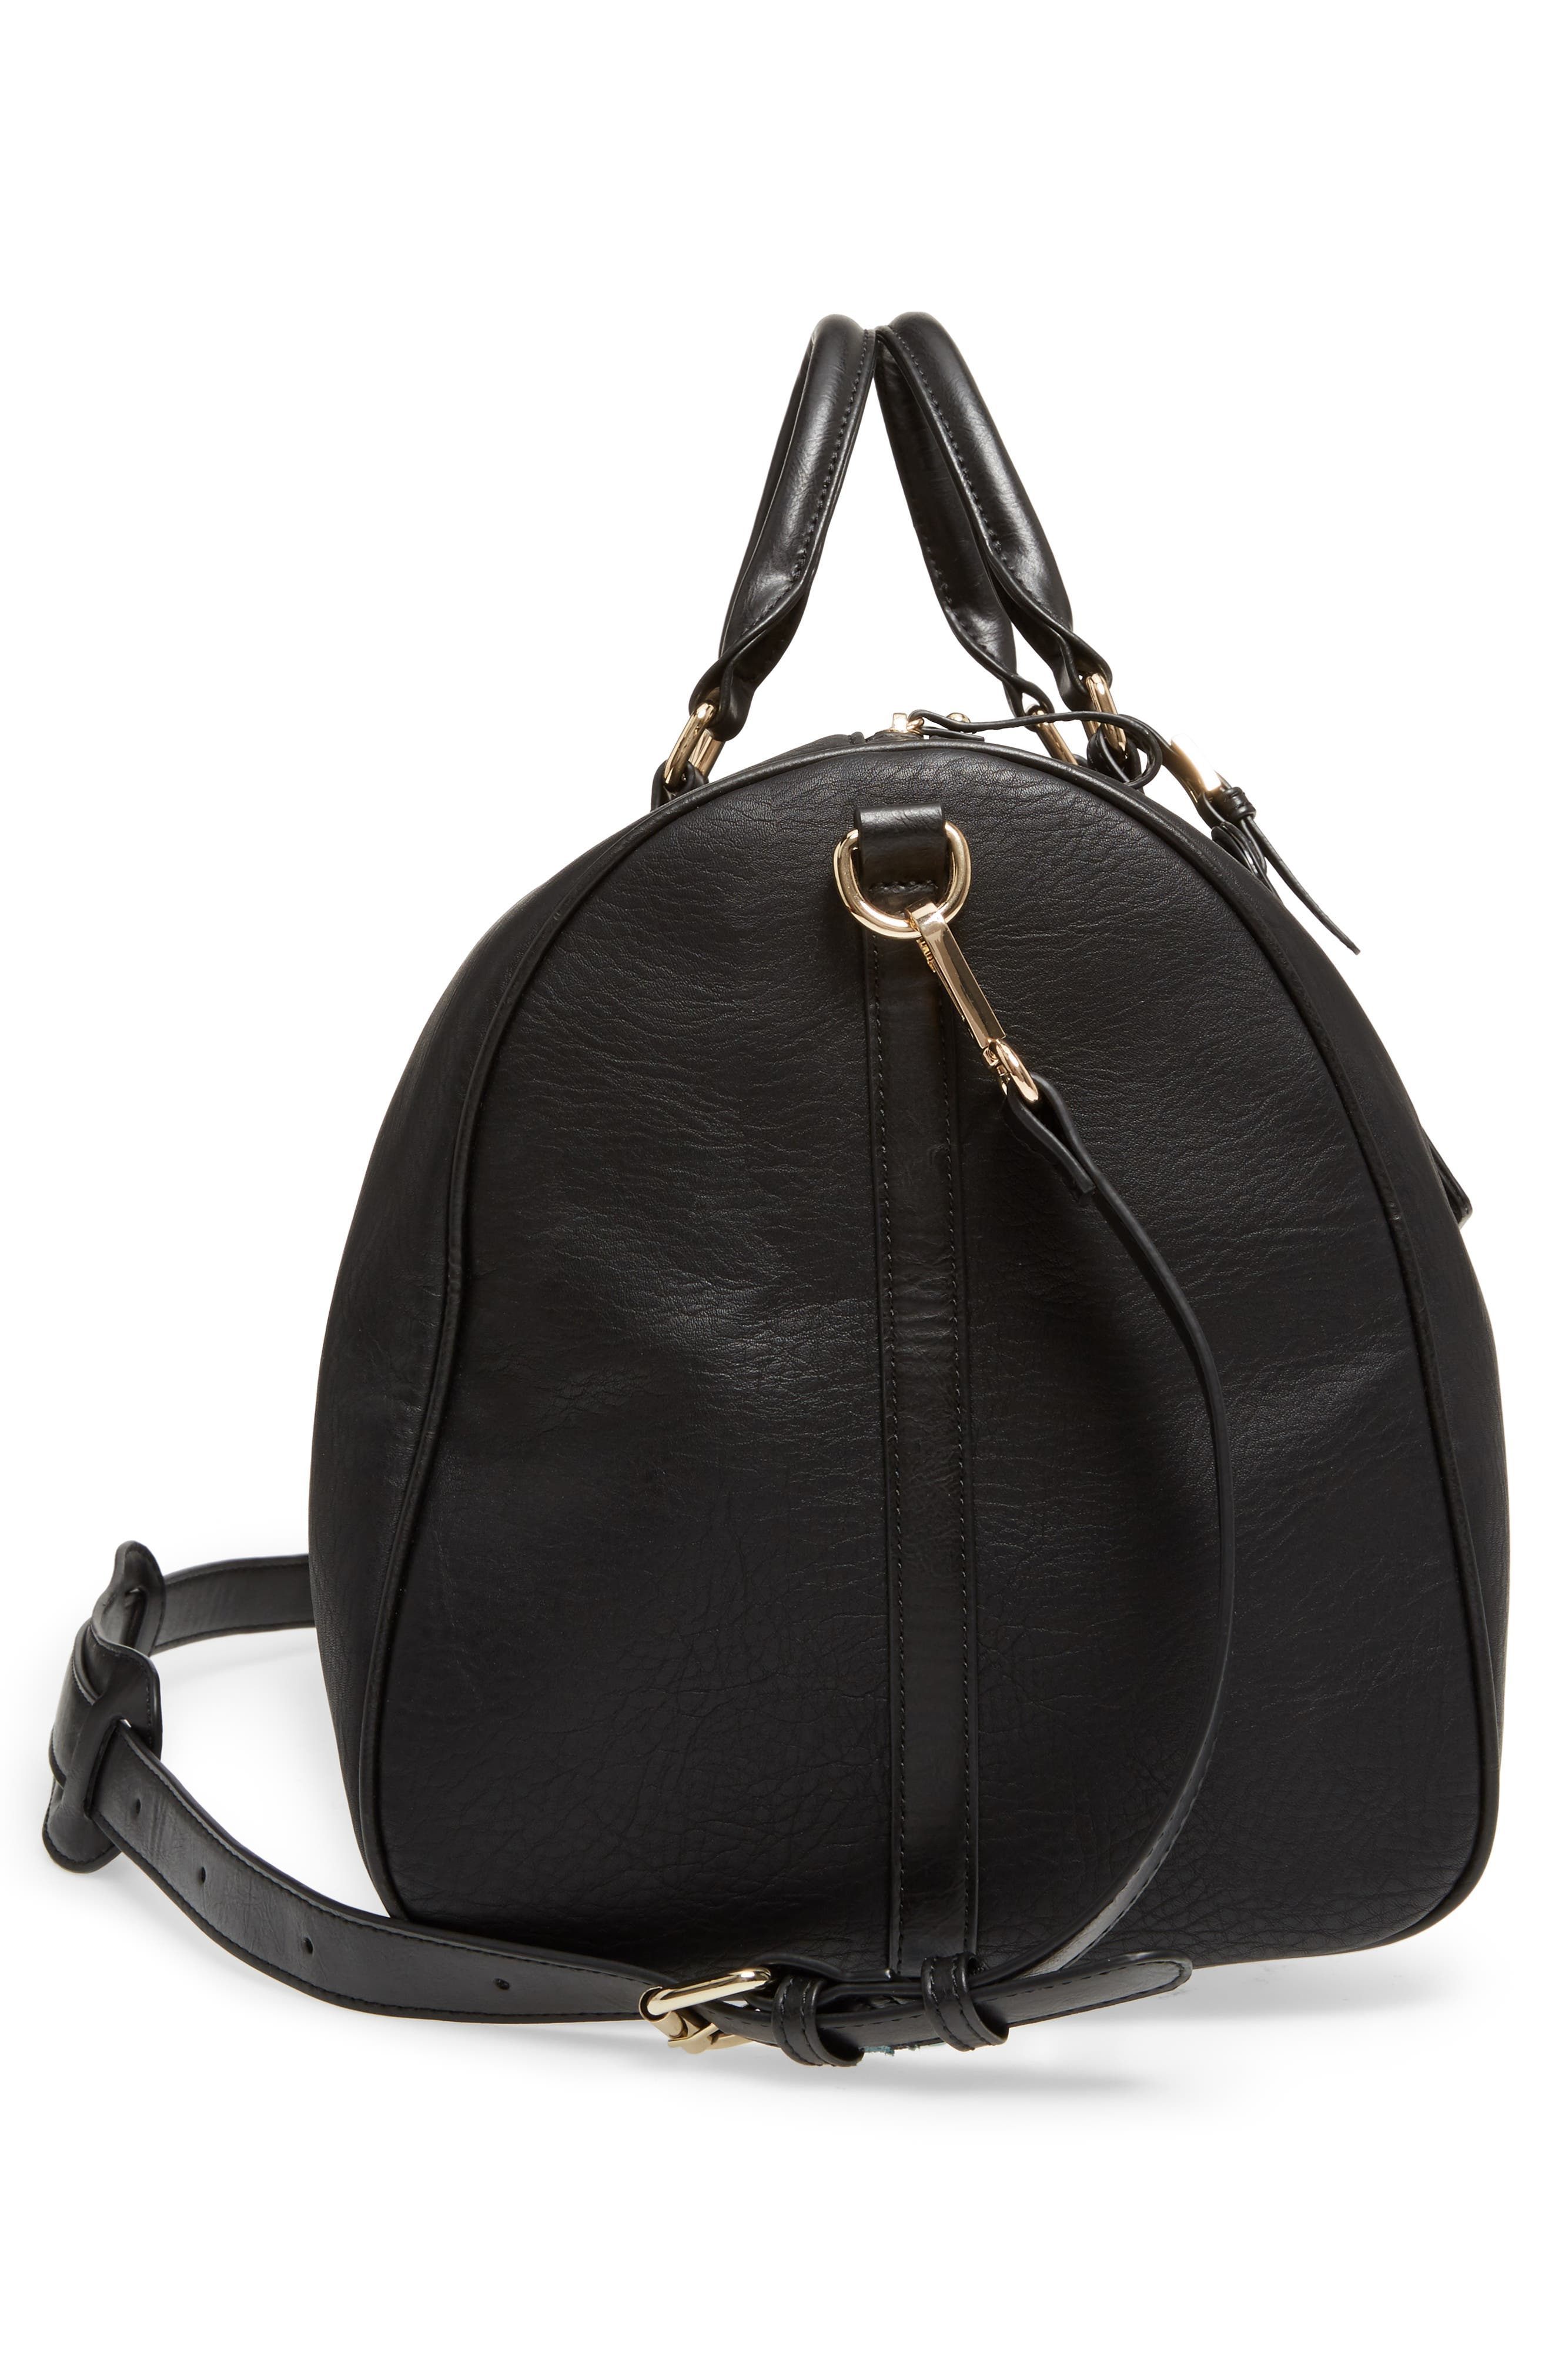 'Cassidy' Faux Leather Duffel Bag,                             Alternate thumbnail 5, color,                             002